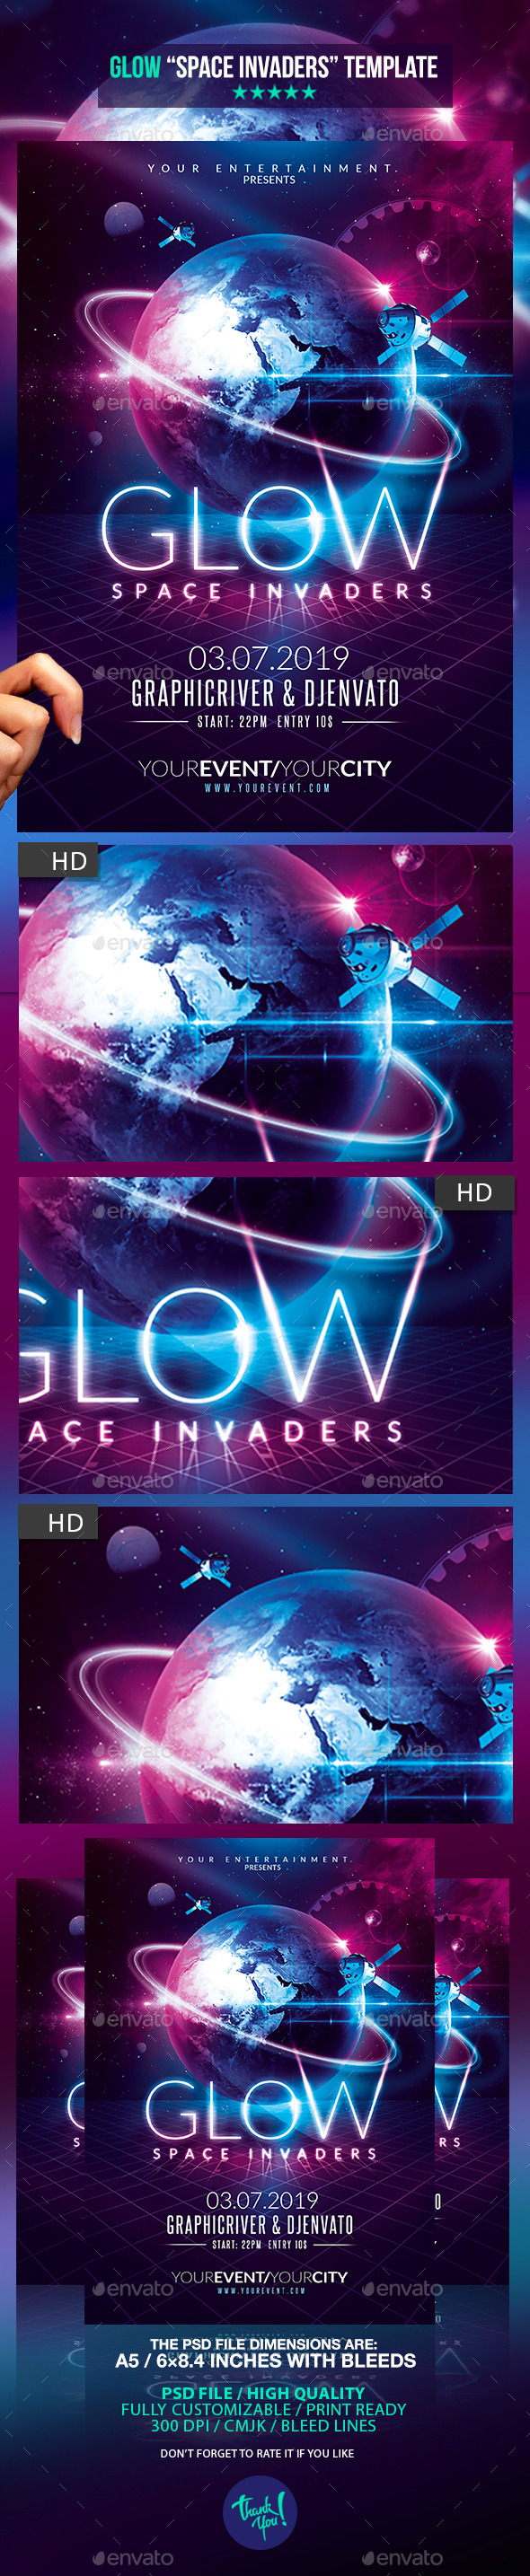 GraphicRiver Glow Party Space Invaders Template 10852804